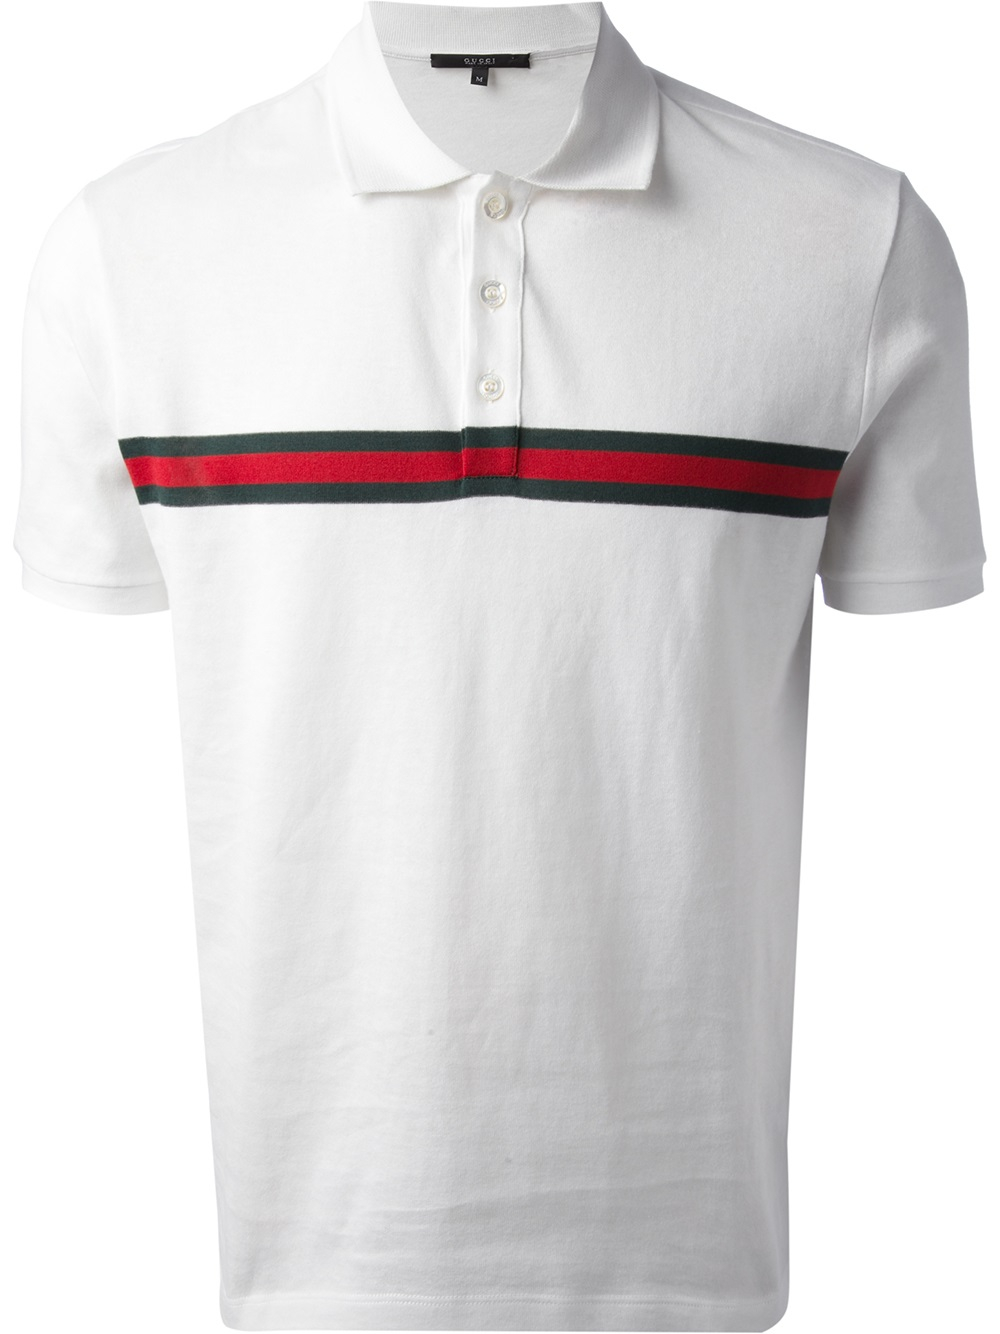 604cee1e11f2 Gucci Short Sleeve Polo Shirt in White for Men - Lyst